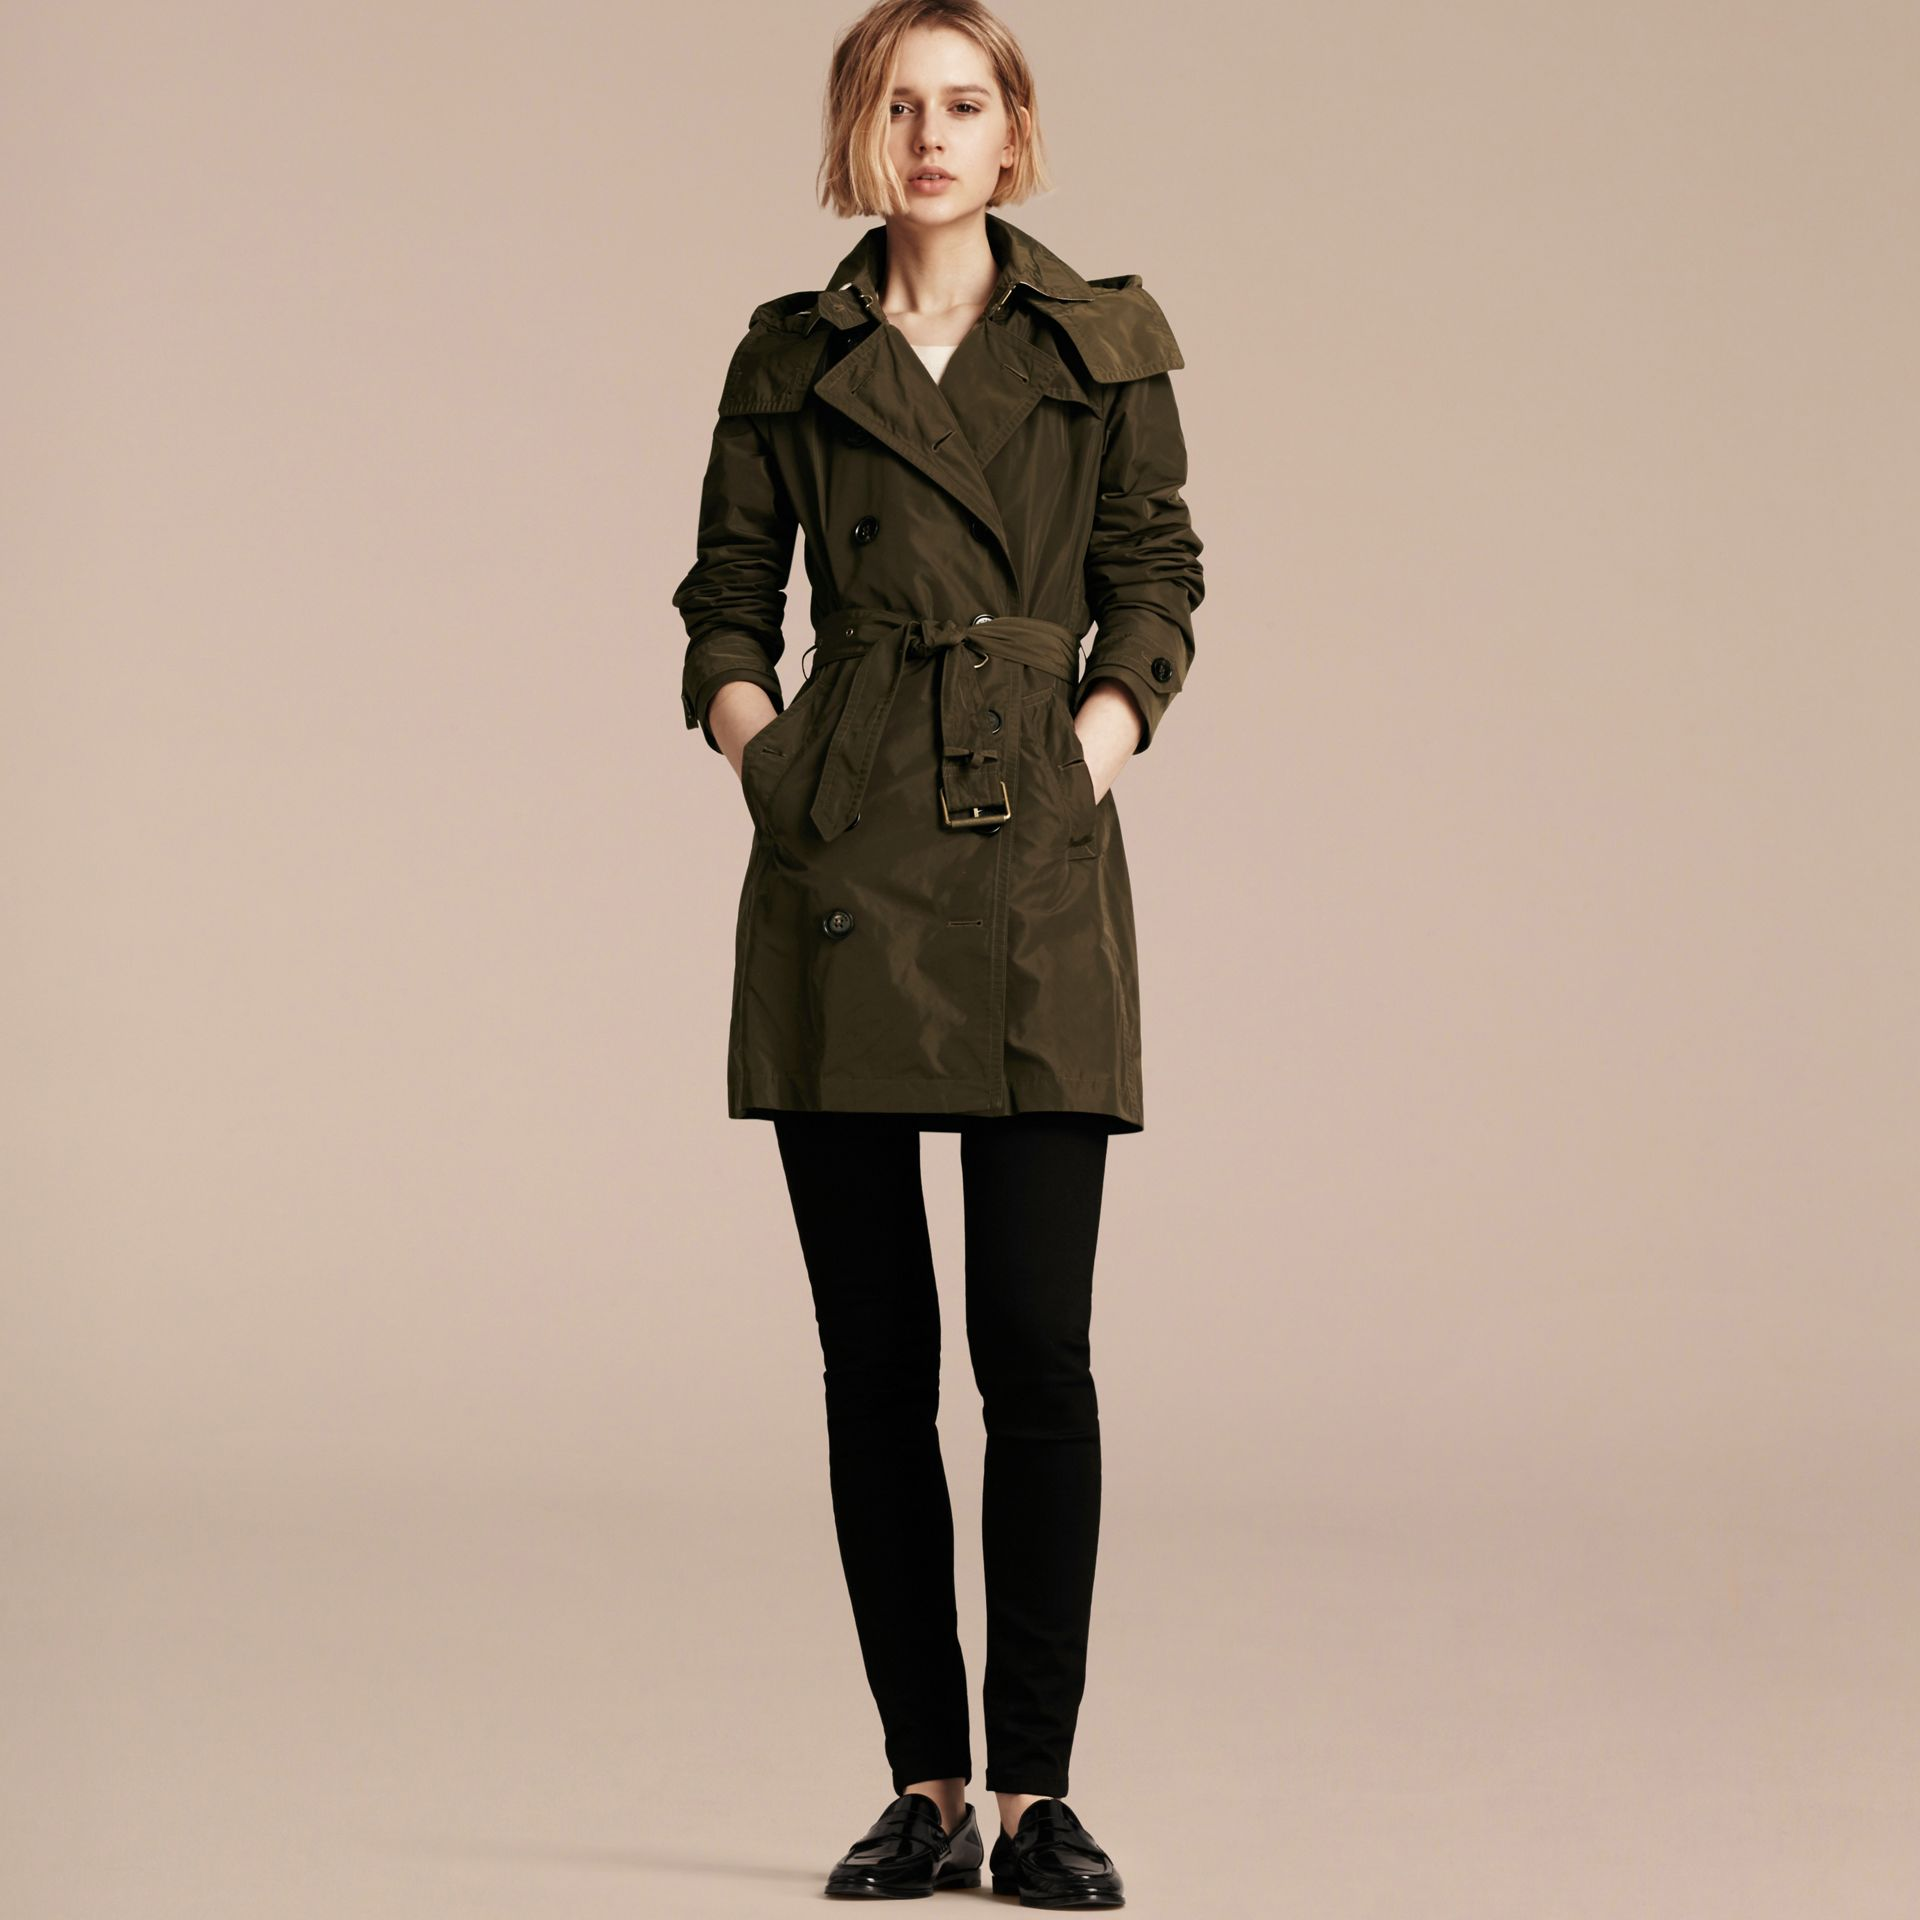 Taffeta Trench Coat with Detachable Hood in Dark Olive - Women | Burberry Canada - gallery image 1